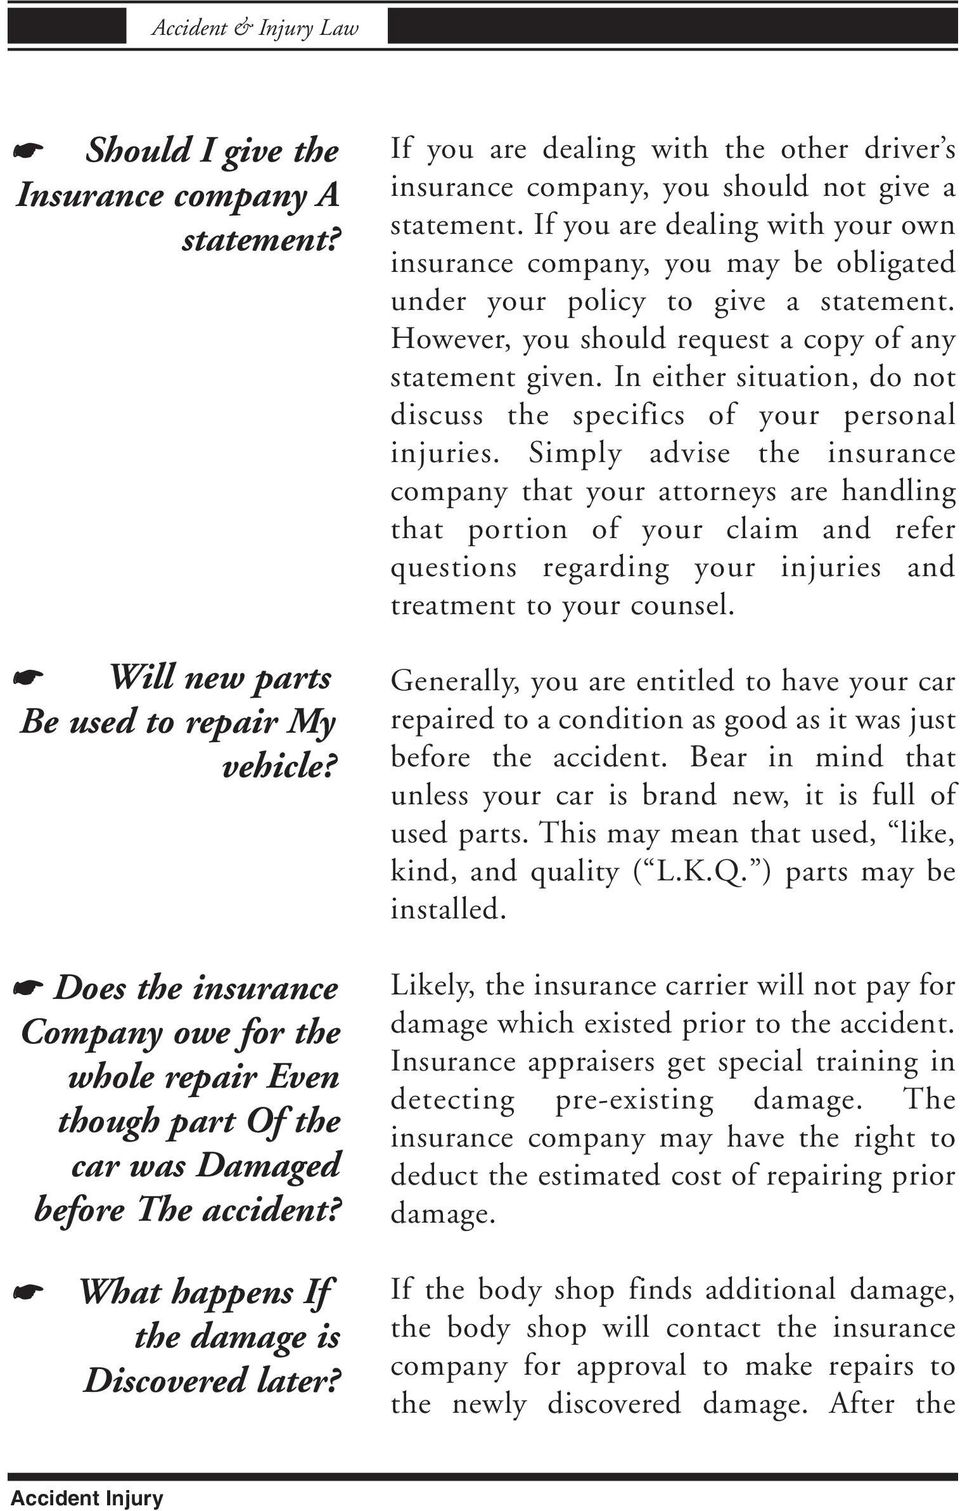 If you are dealing with the other driver s insurance company, you should not give a statement.